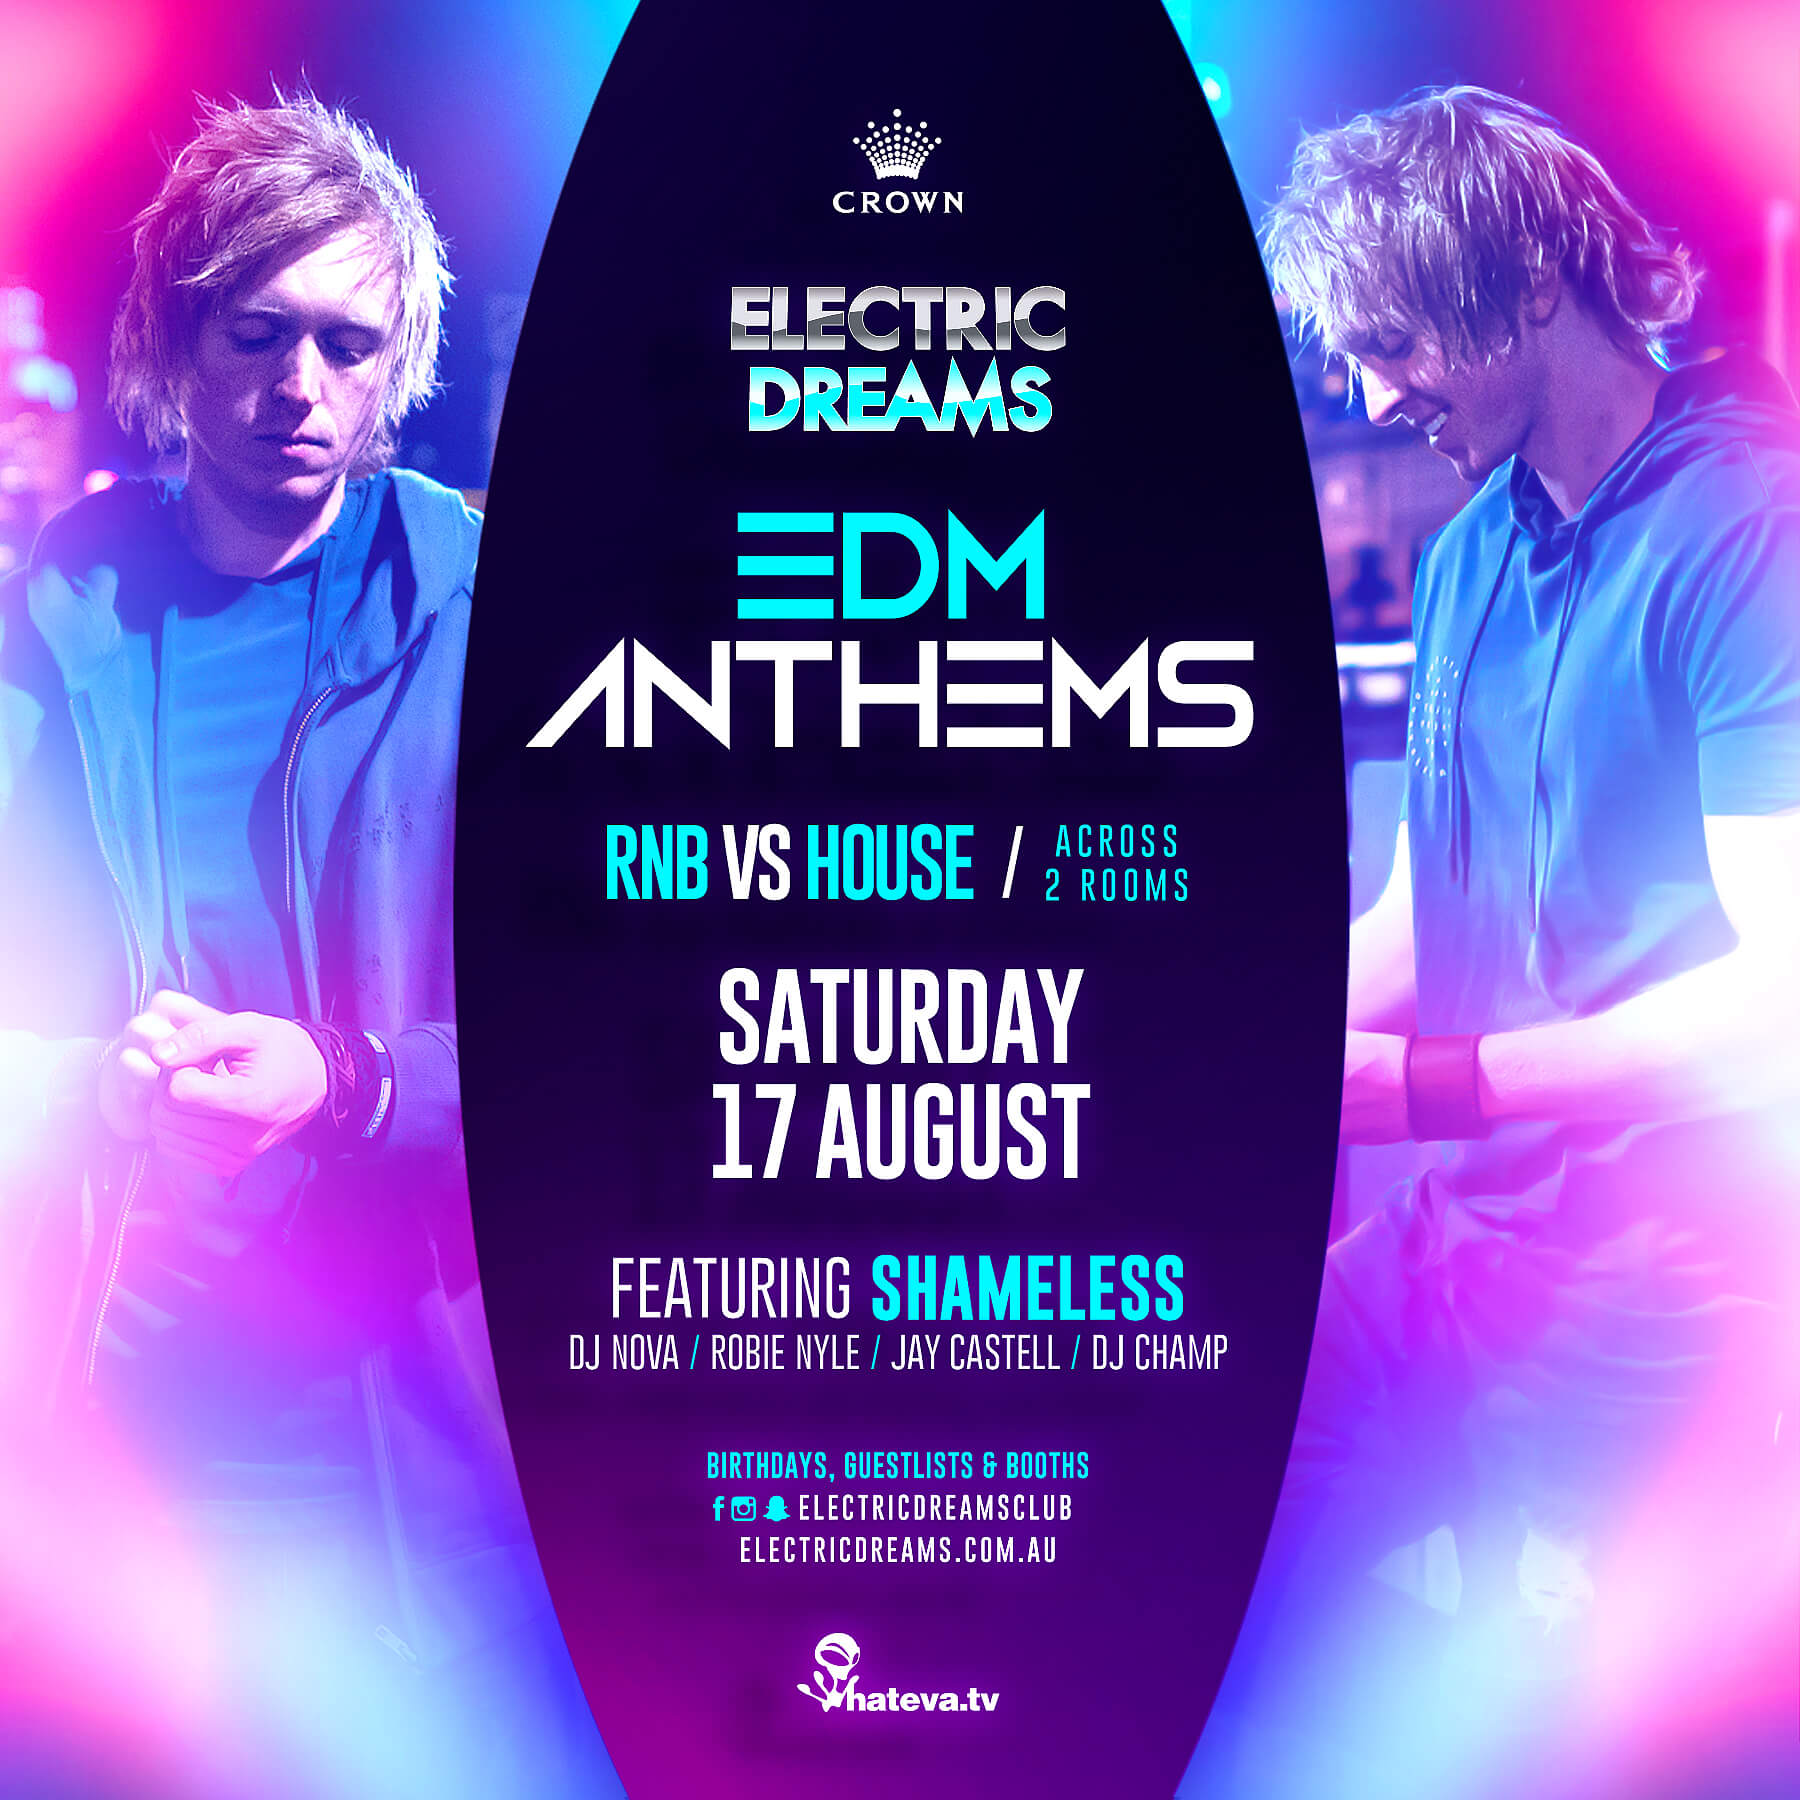 ED_August_17_EDM-Anthems_V1 (1).jpg